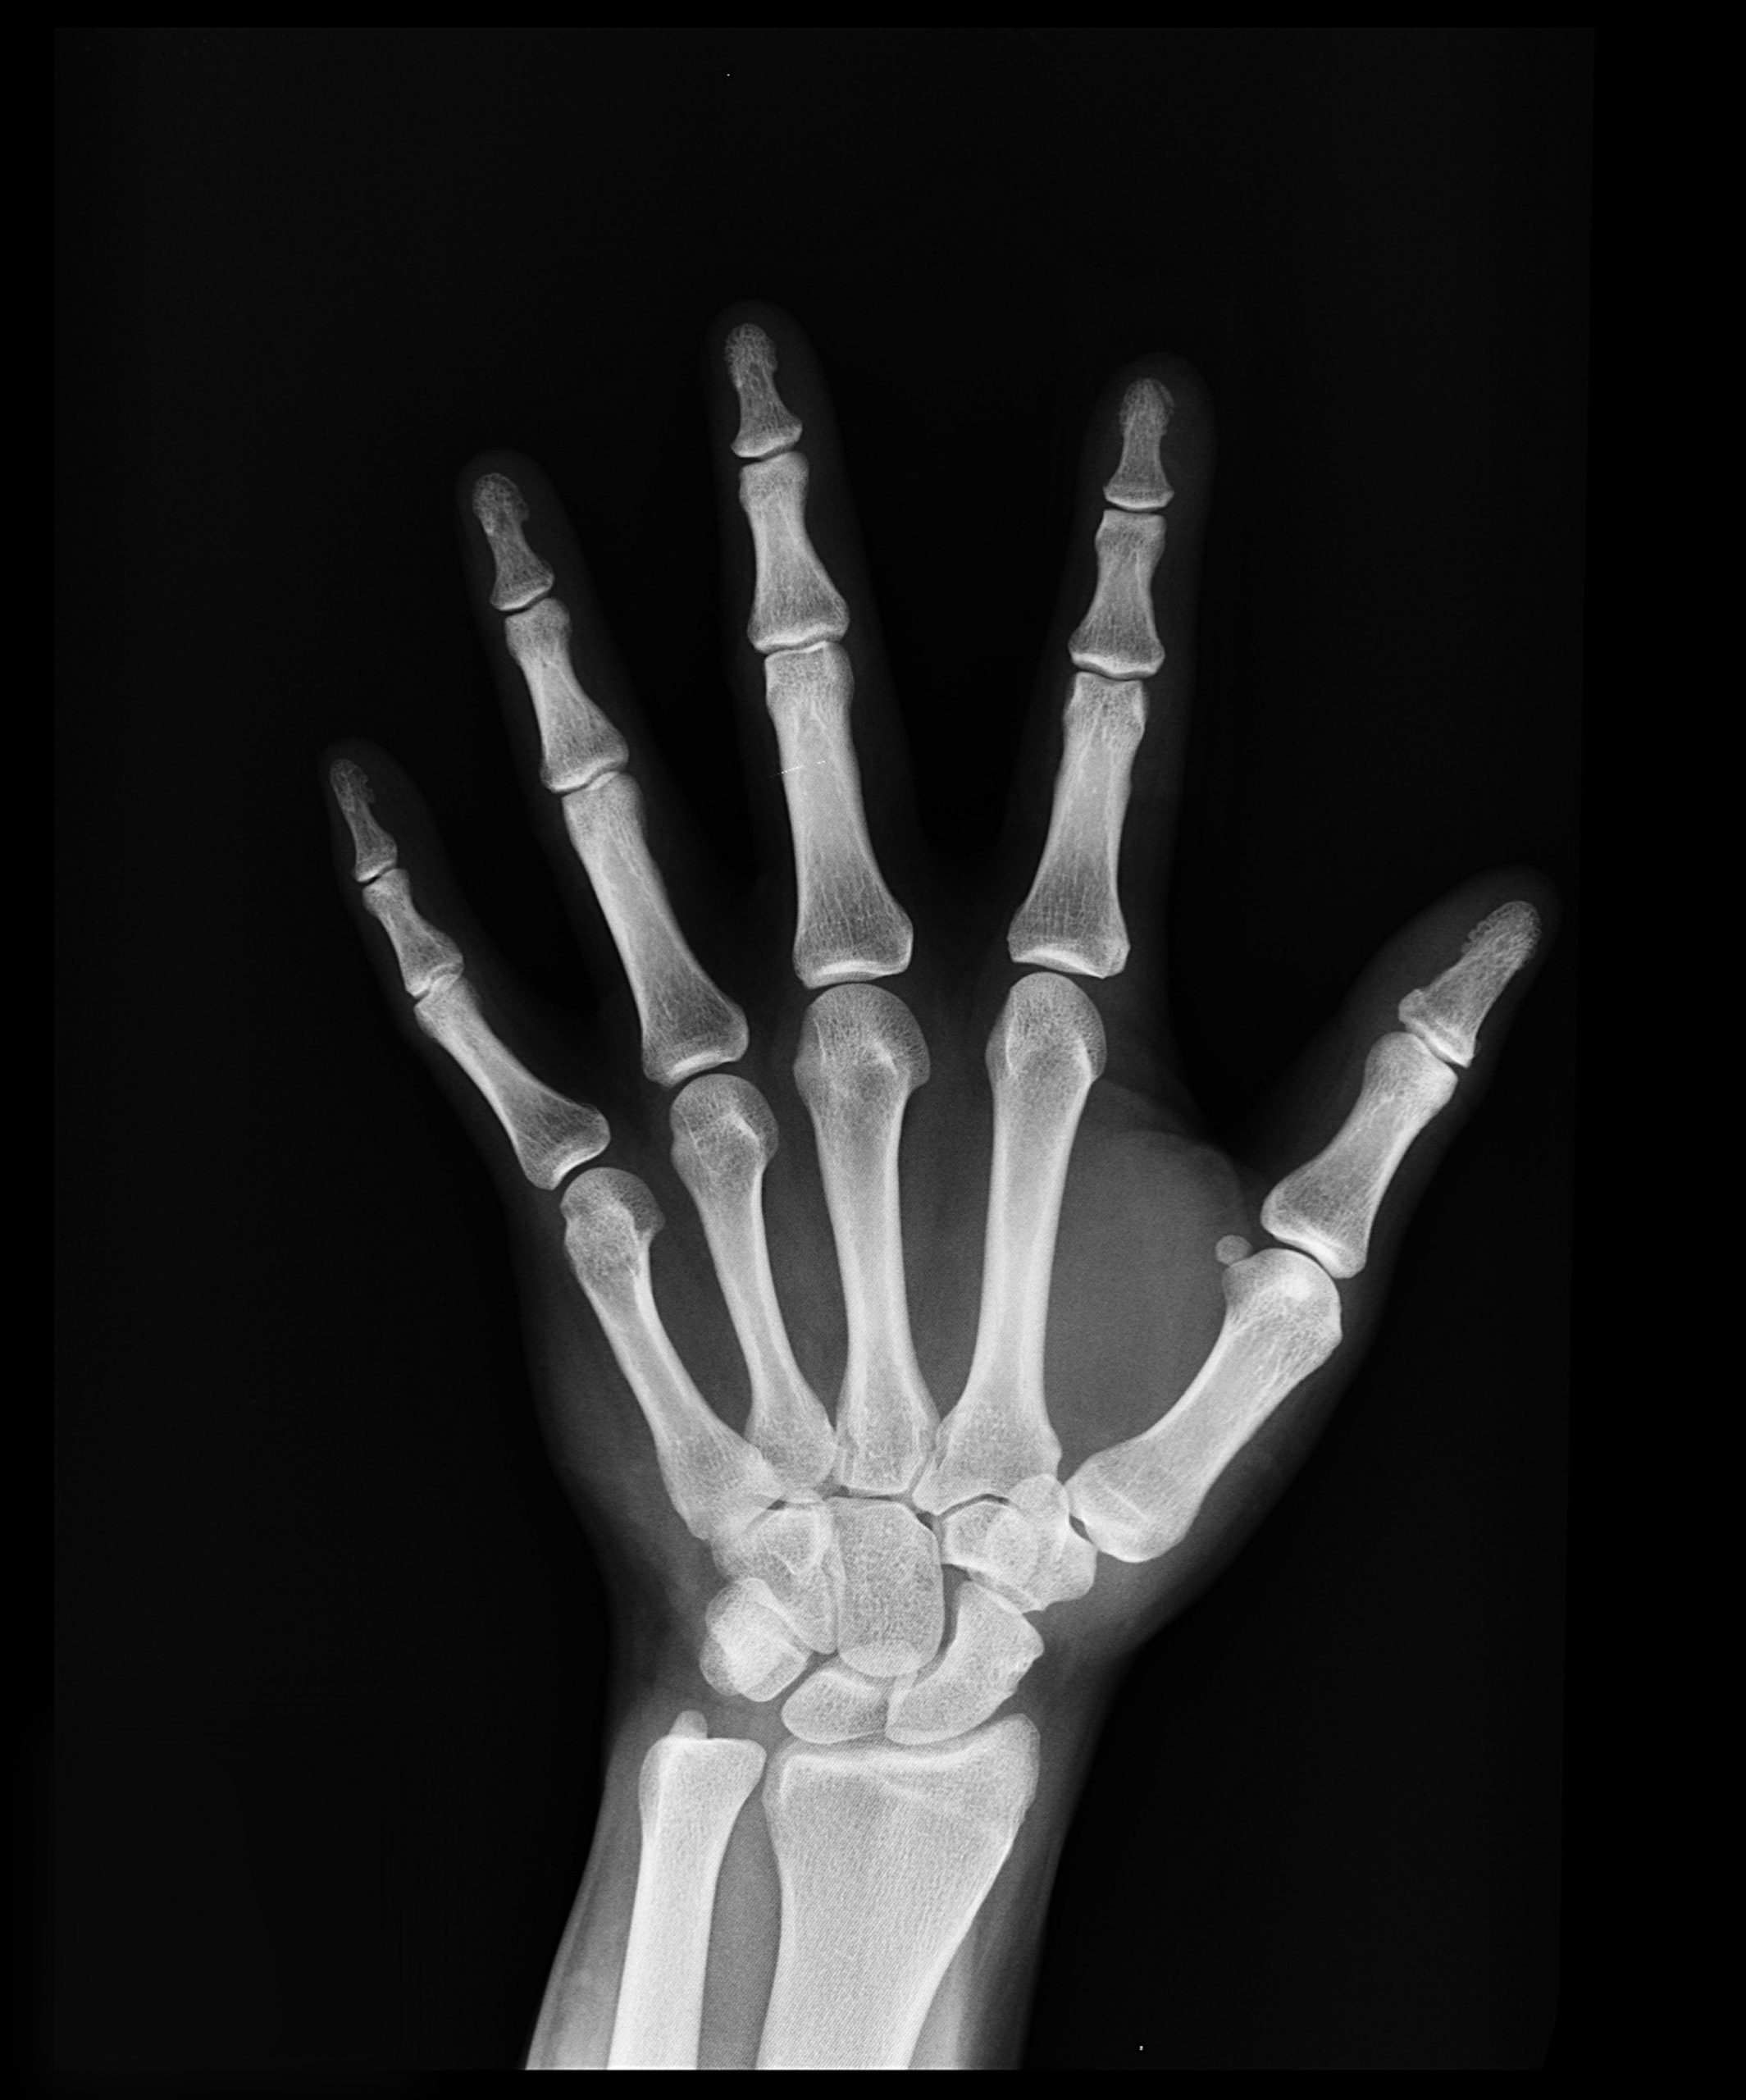 FESSH Clinical and Basic Research Grants for Hand Surgery Open for Application